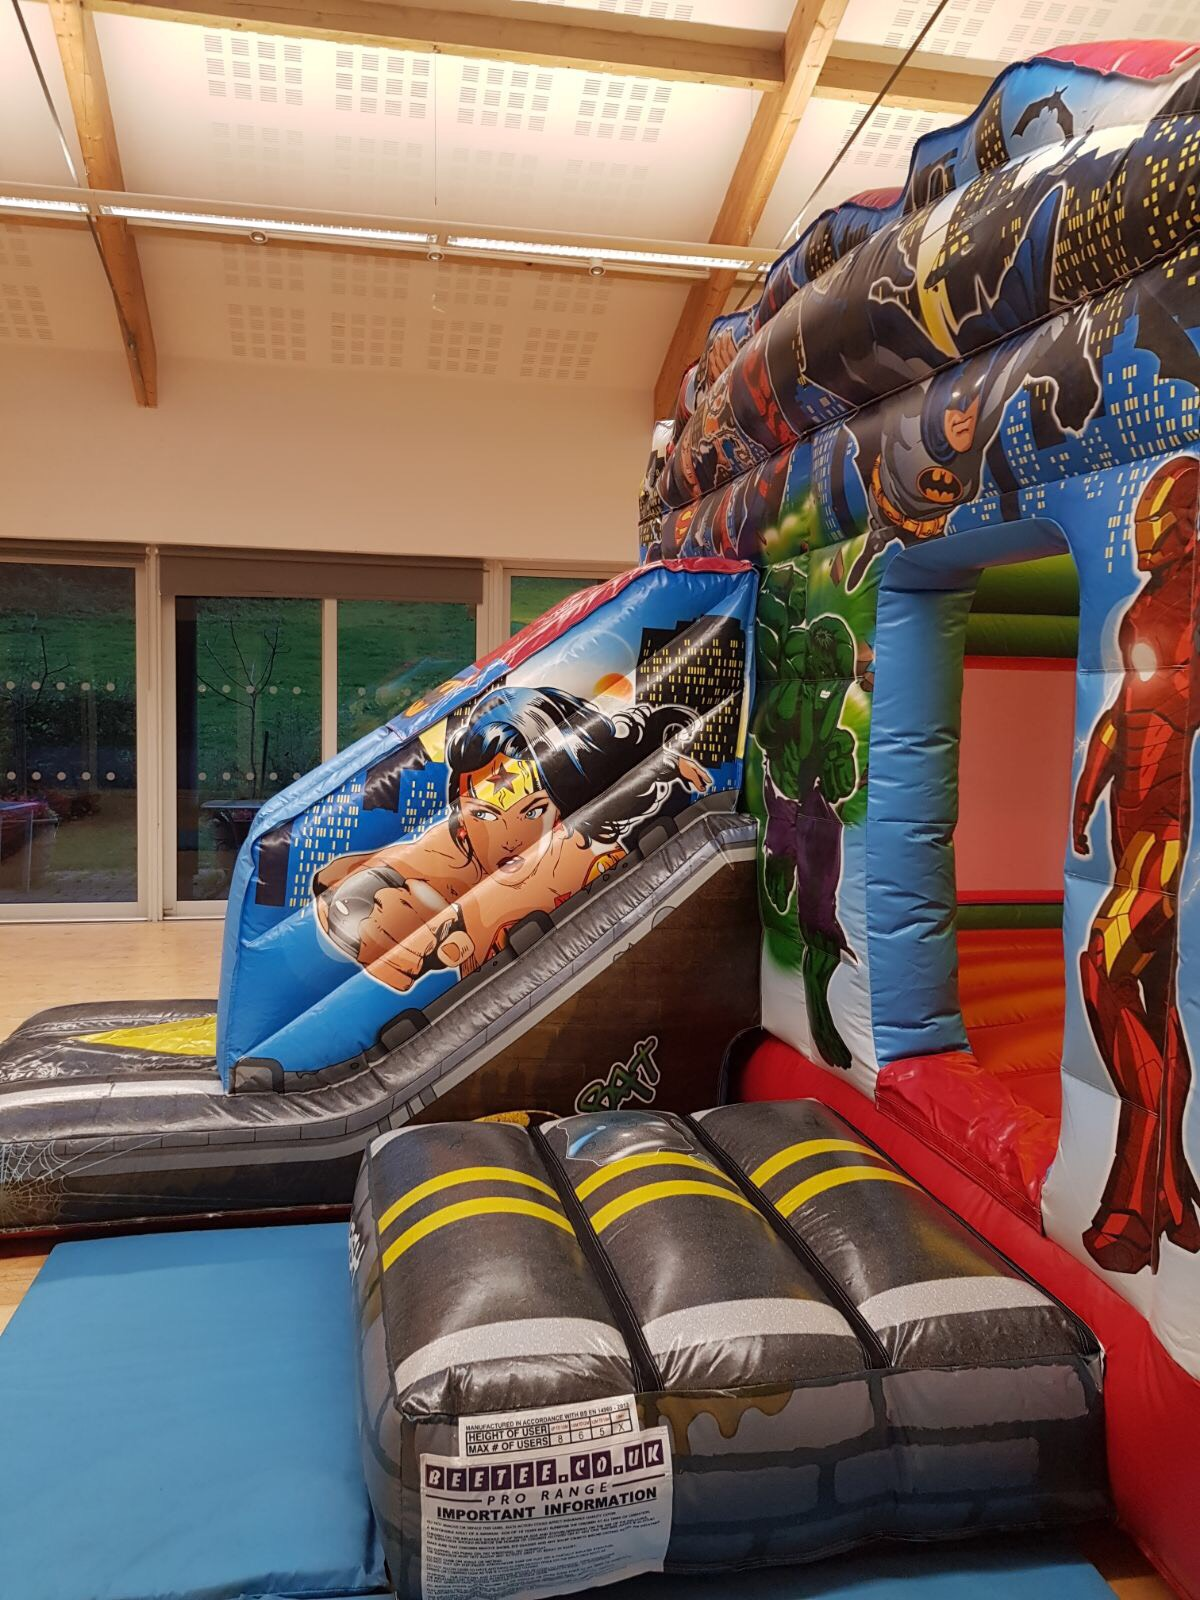 Bouncy Castle Hire In Newton Abbot, Torbay, Torquay, Paignton, Totnes, Exeter